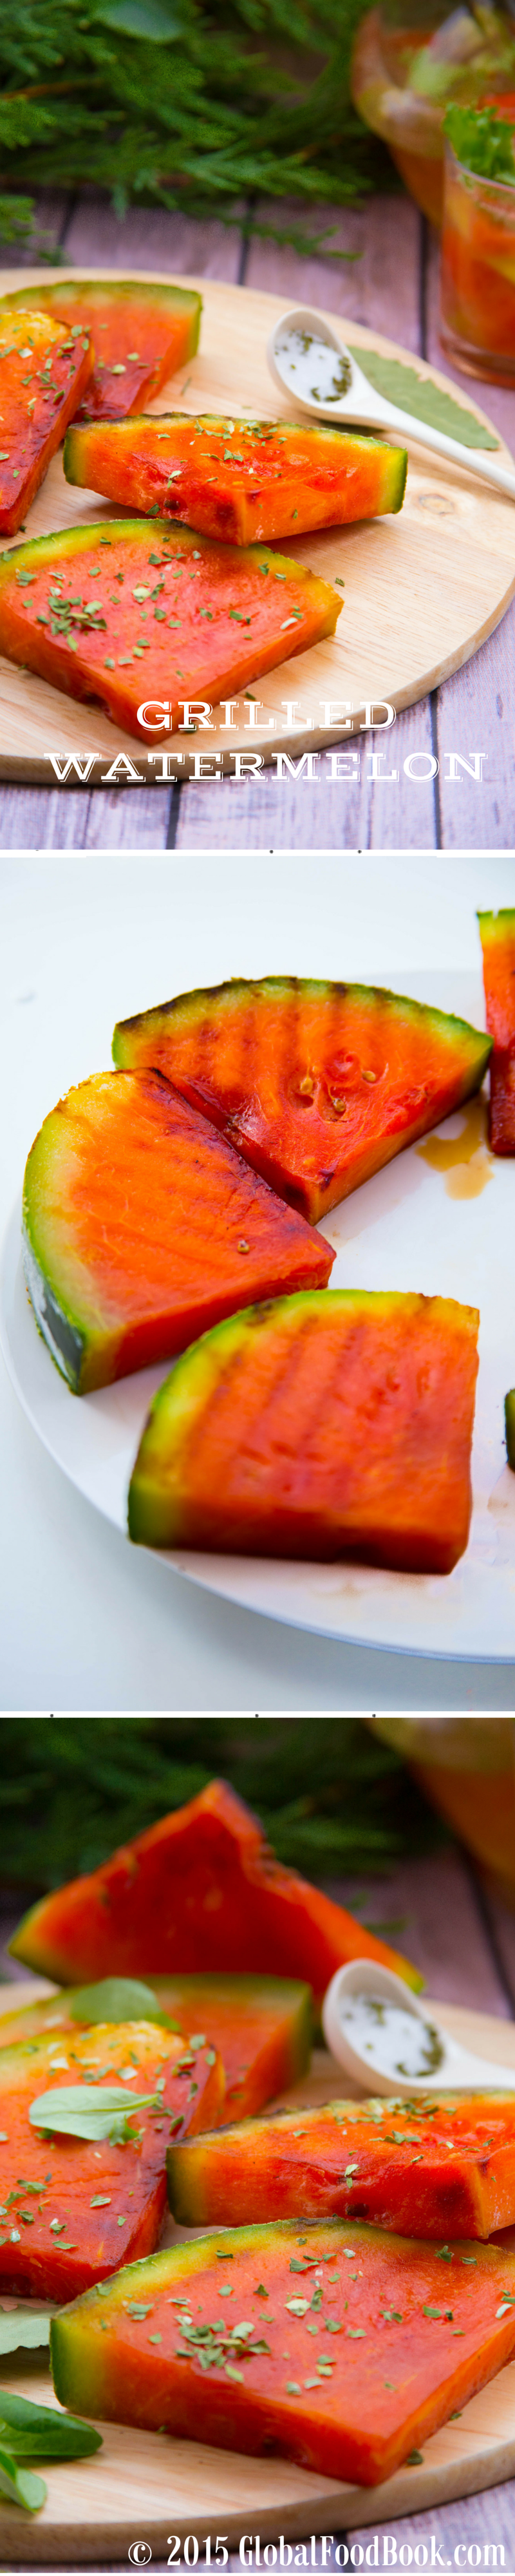 GRILLED WATERMELON (3)